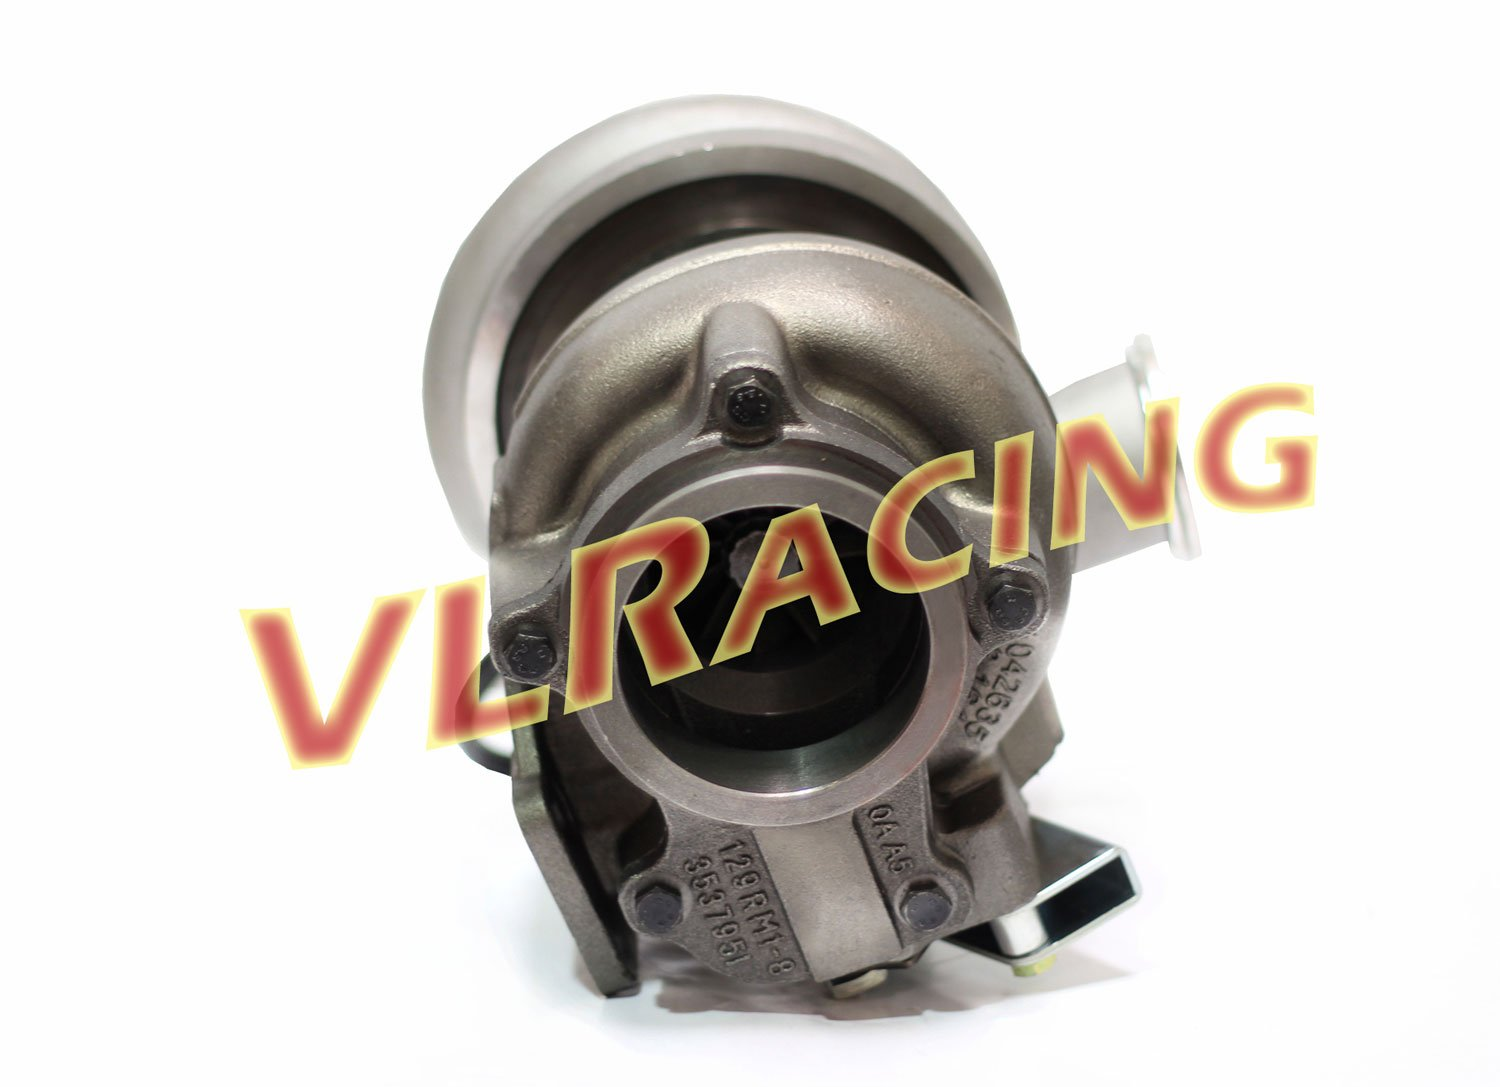 Hx40w Super Drag Diesel Turbo T3 Flange Hx40 Dodge RAM Turbocharger 3538232